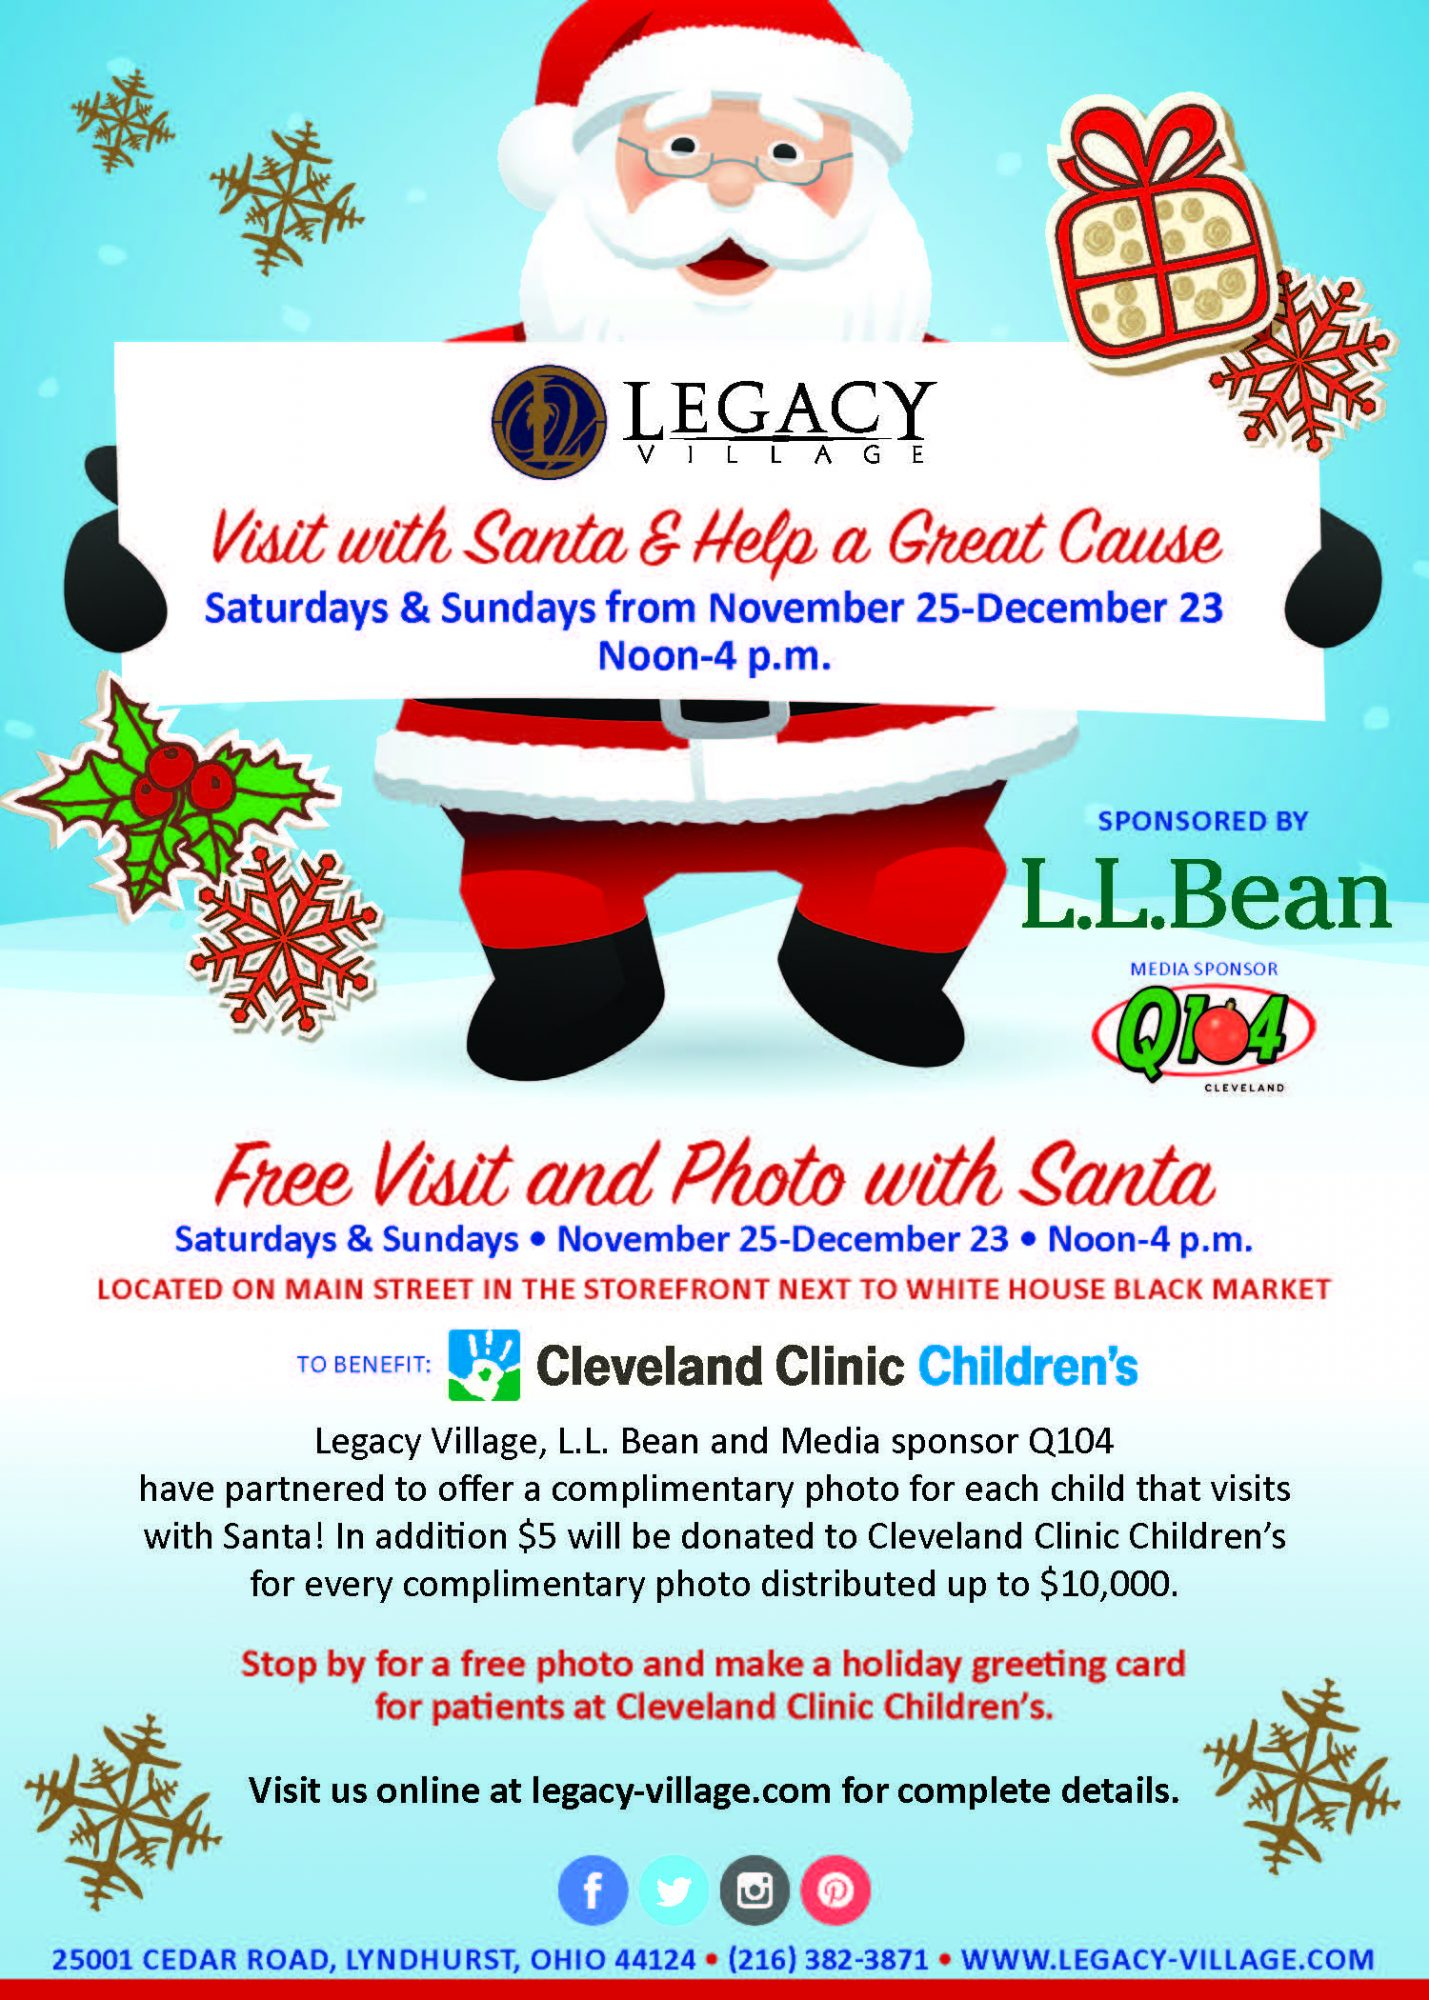 Visit with santa help a great cause weekend of november 25 26 legacy village ll bean and media sponsor q104 have partnered to offer a complimentary photo for each child that visits with santa kristyandbryce Image collections